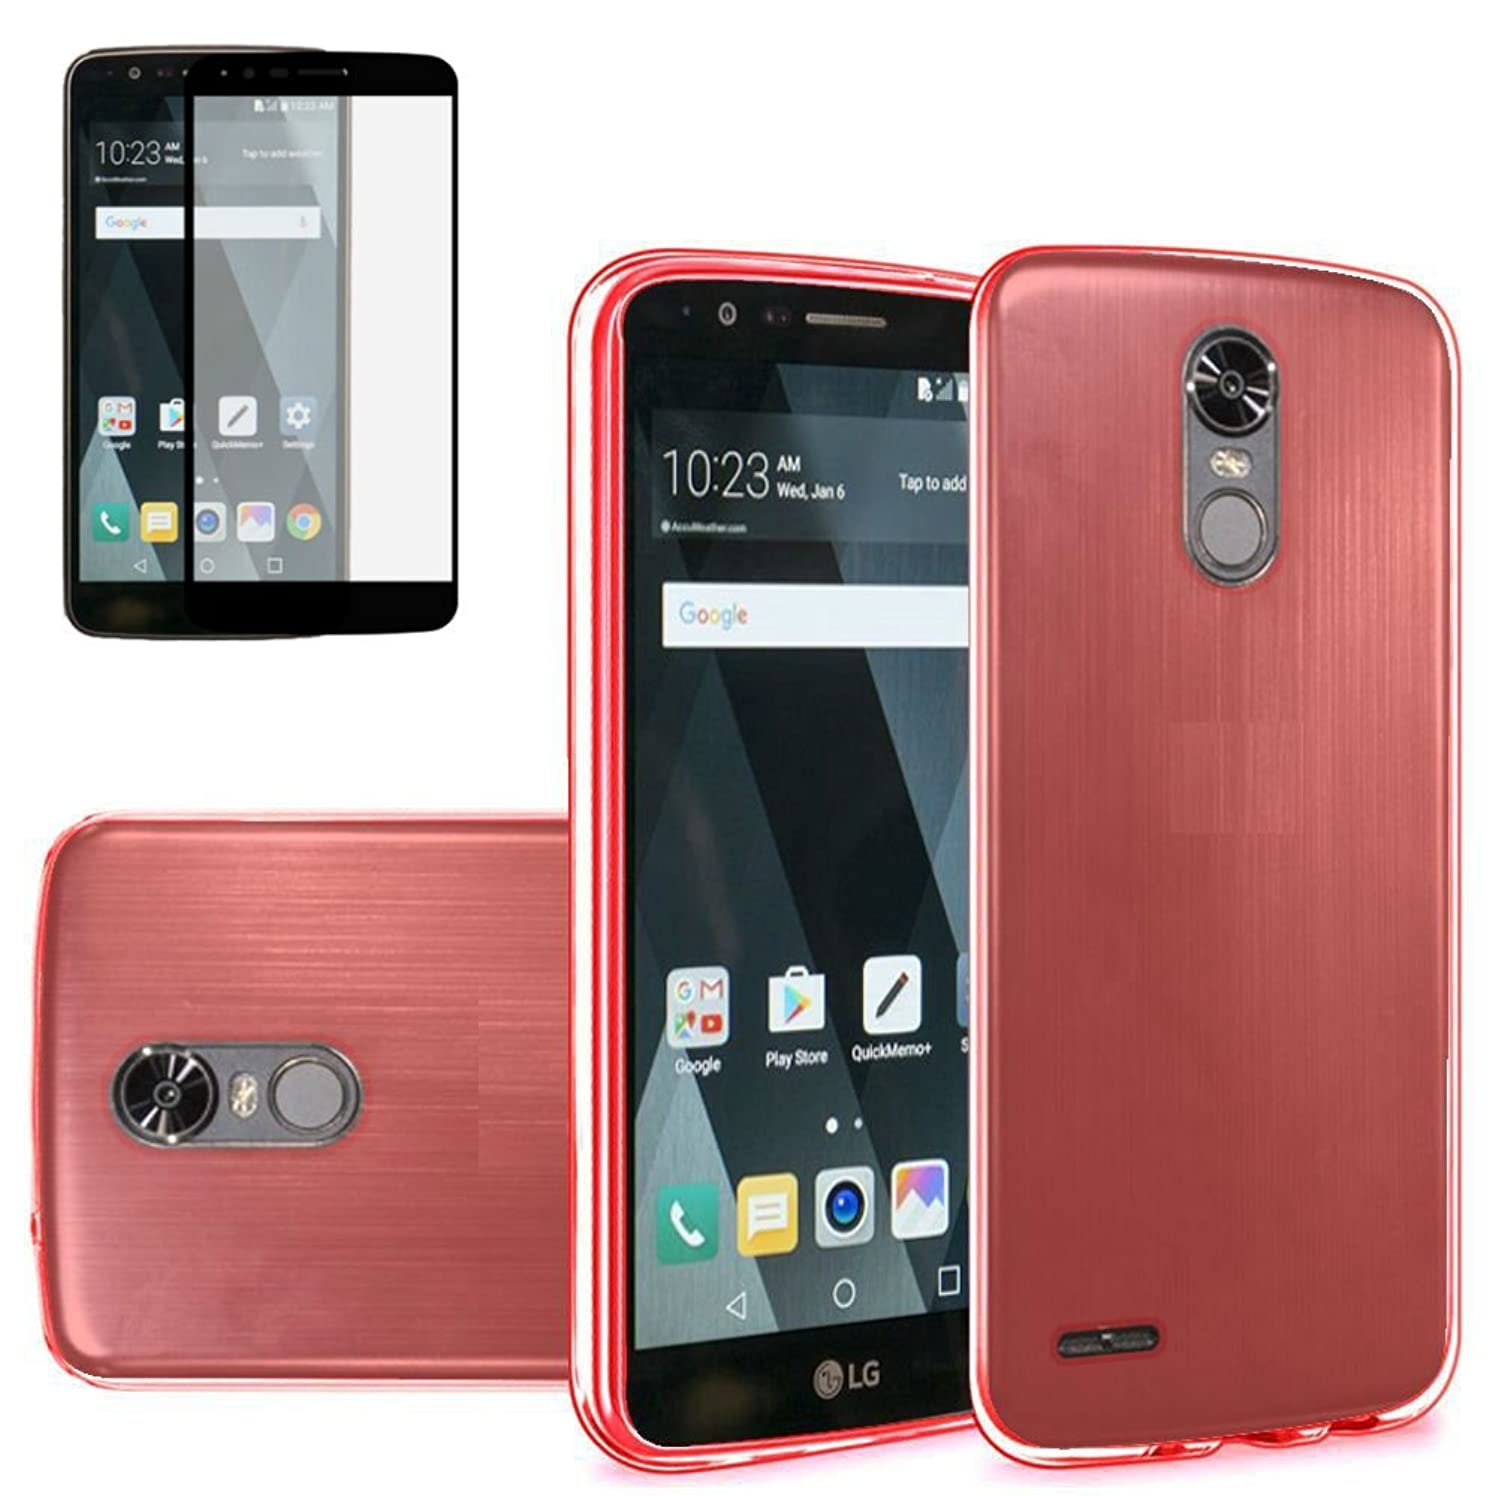 Tempered Glass+Slim TPU Rubber Case Cover For LG Stylo 3 / Stylo 3 Plus / Stylus 3 2017 Phone (Red)